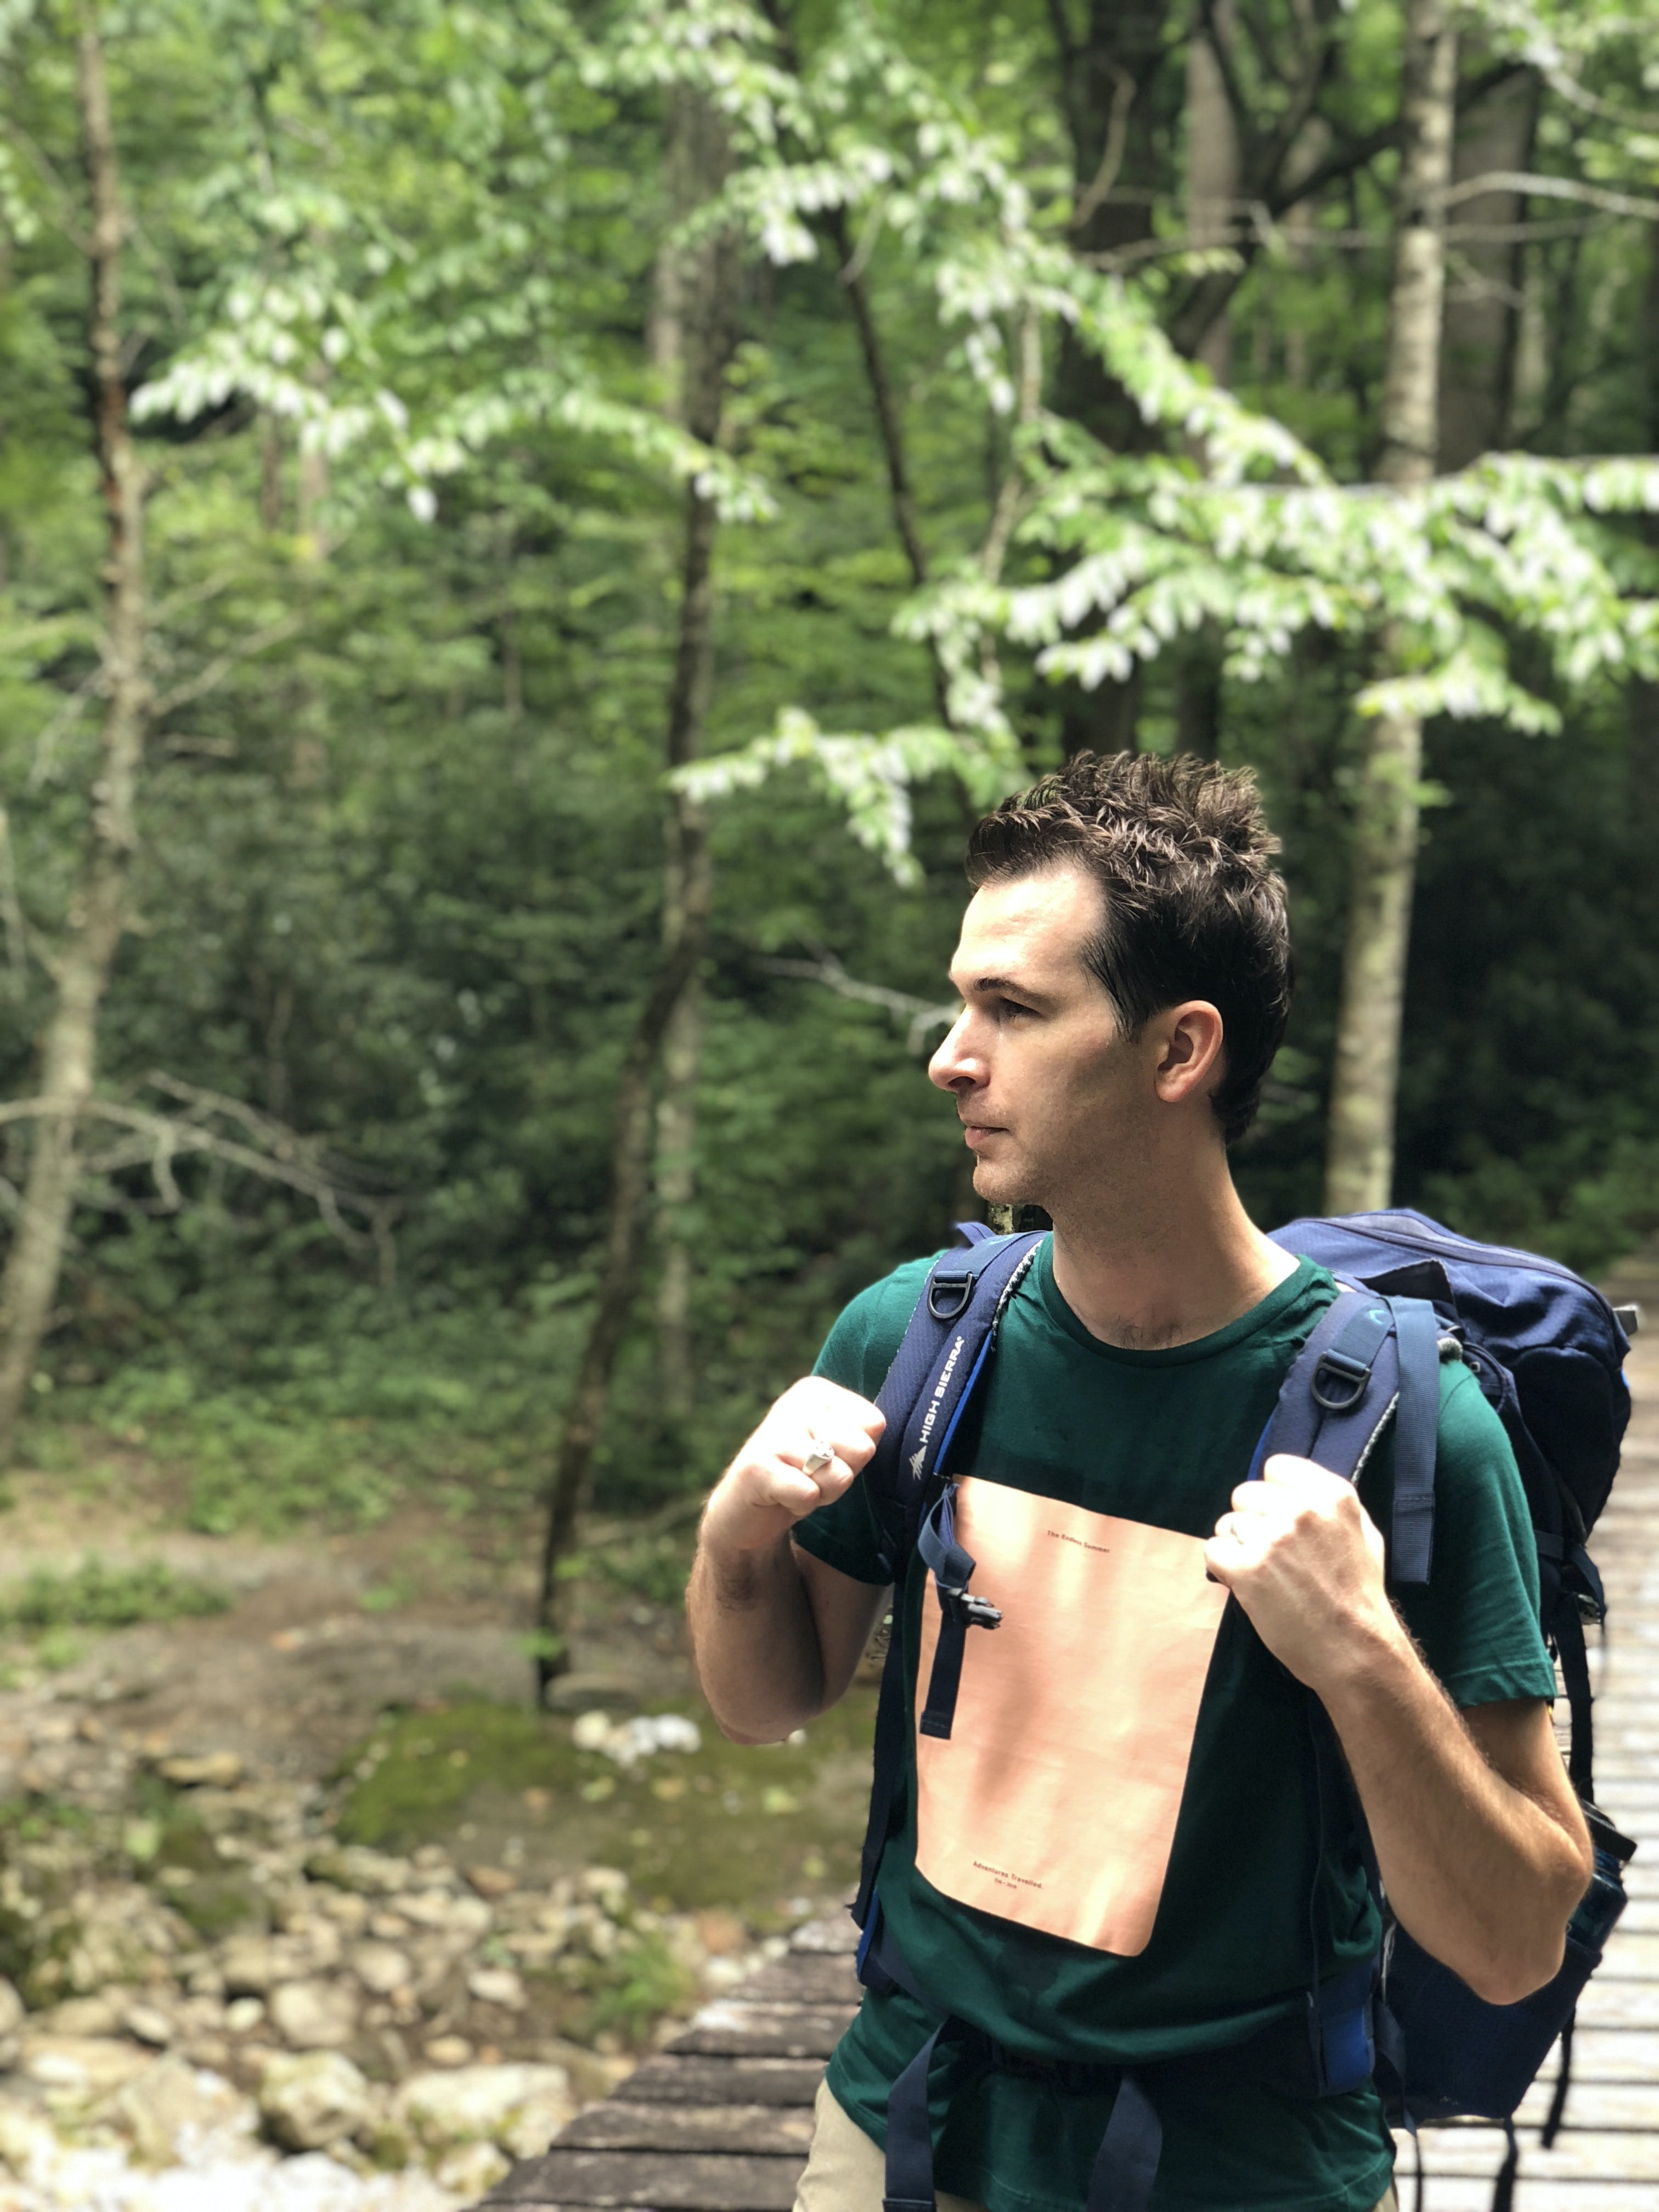 Free stock photo of backpacking, hiker